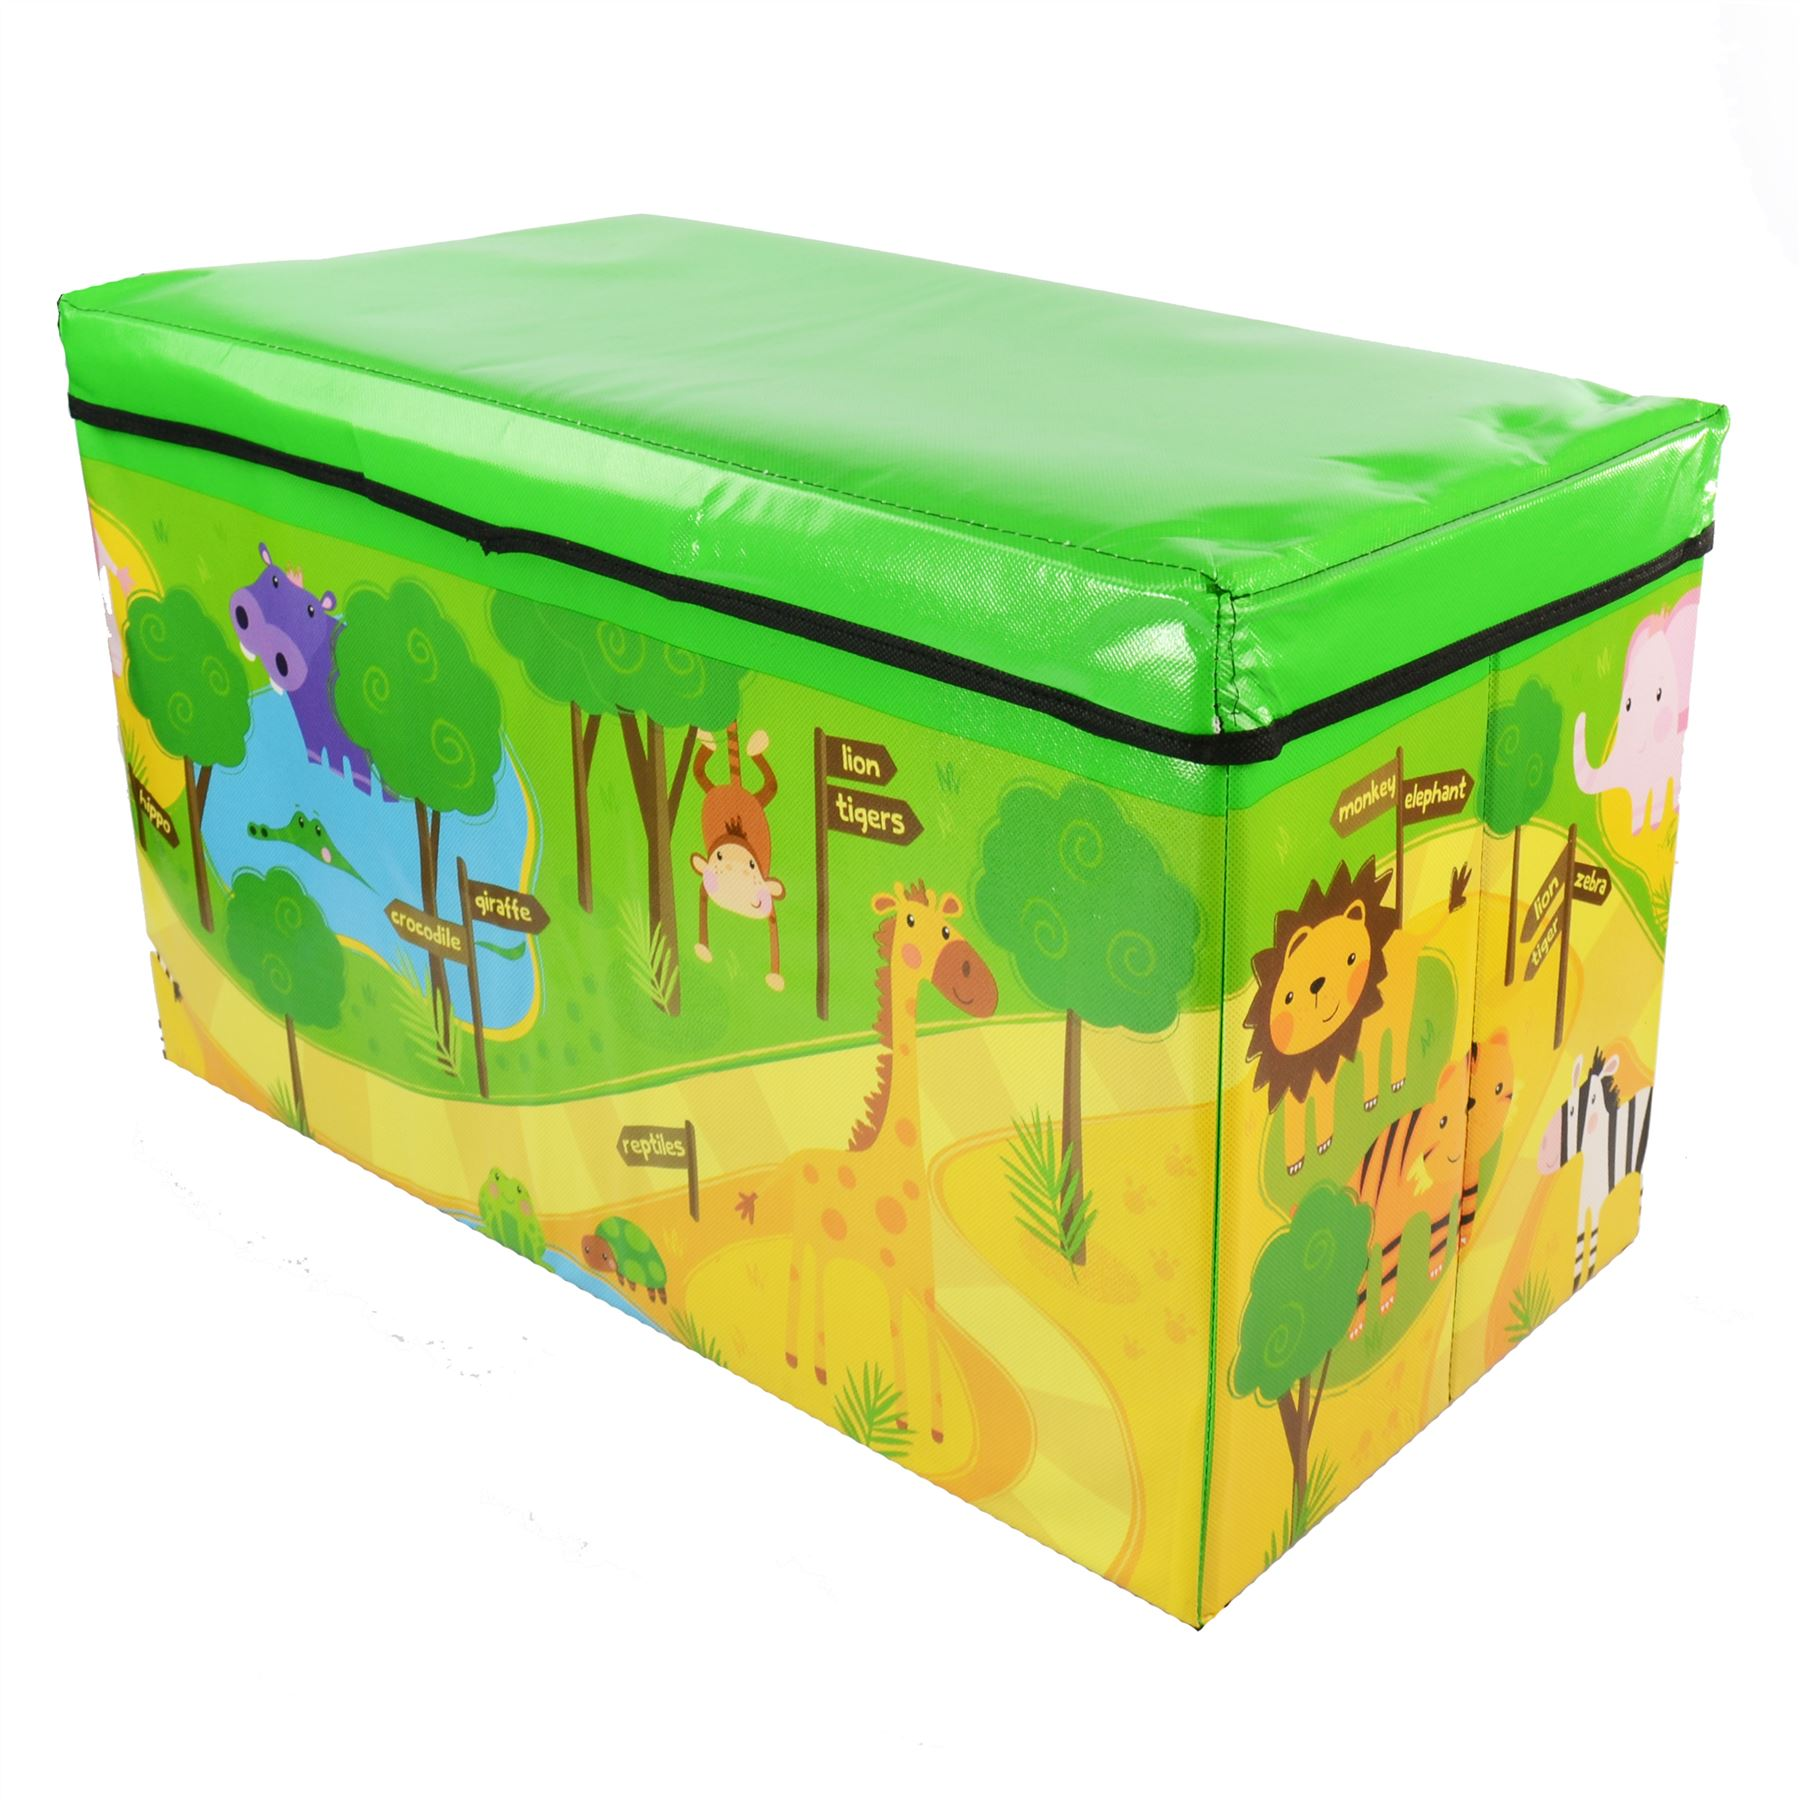 Kids Collapsible Ottoman Toy Books Box Storage Seat Chest: Boys Girls Kids Large Folding Storage Toy Box Books Chest